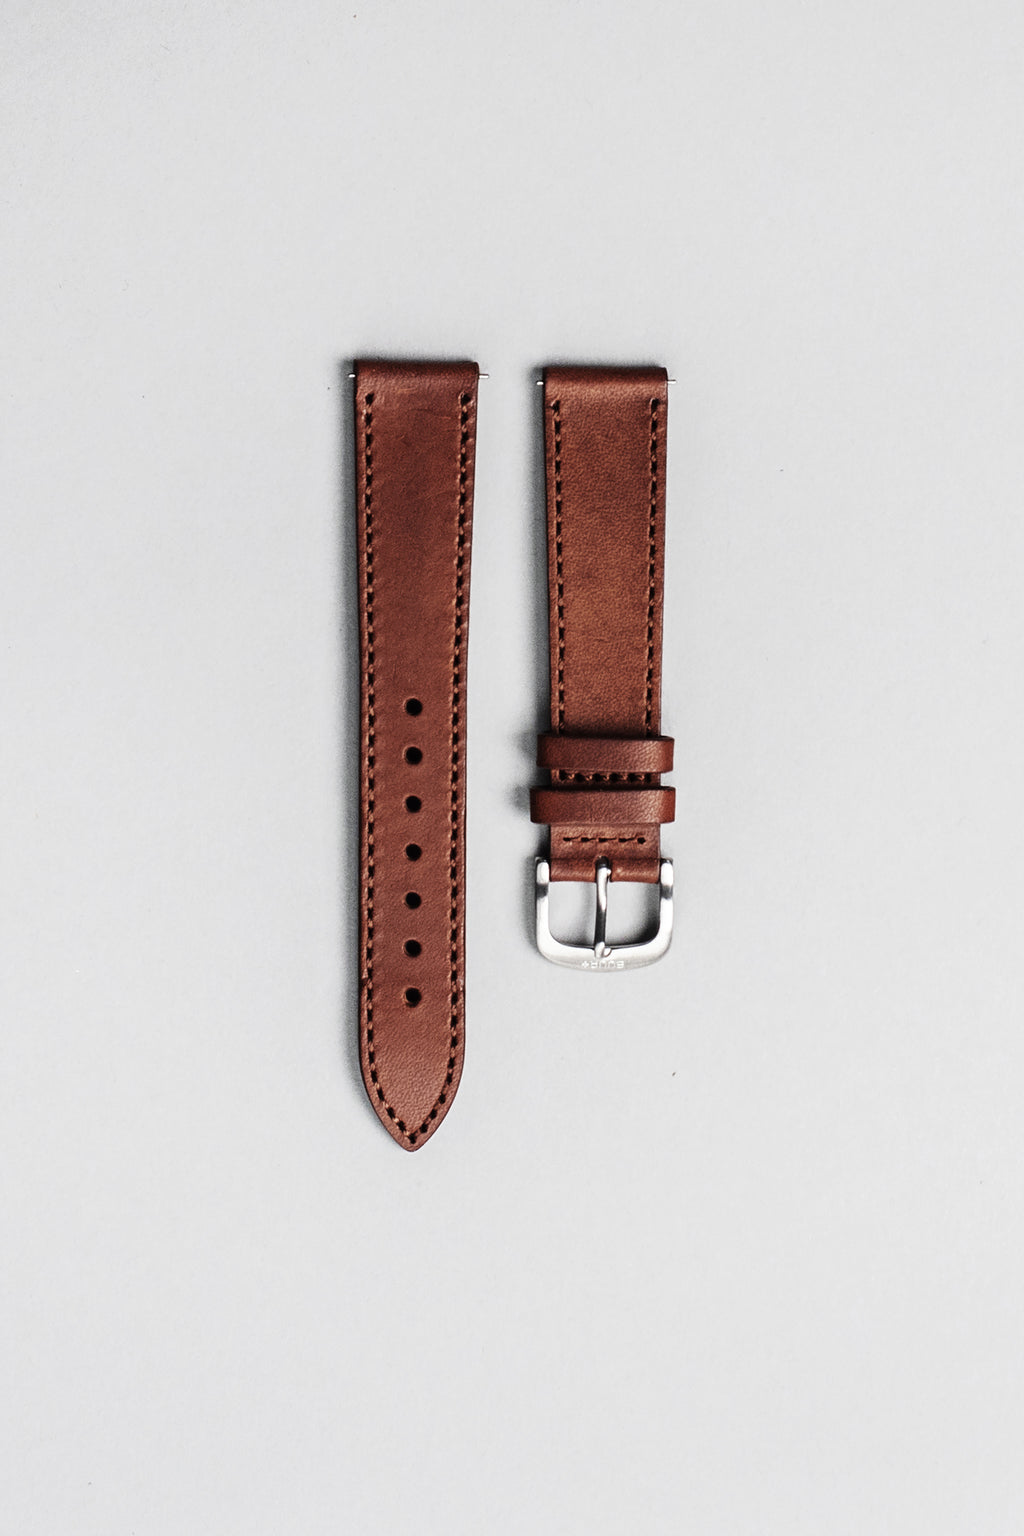 The brown Italian veg tan leather strap with brushed buckle. 18mm